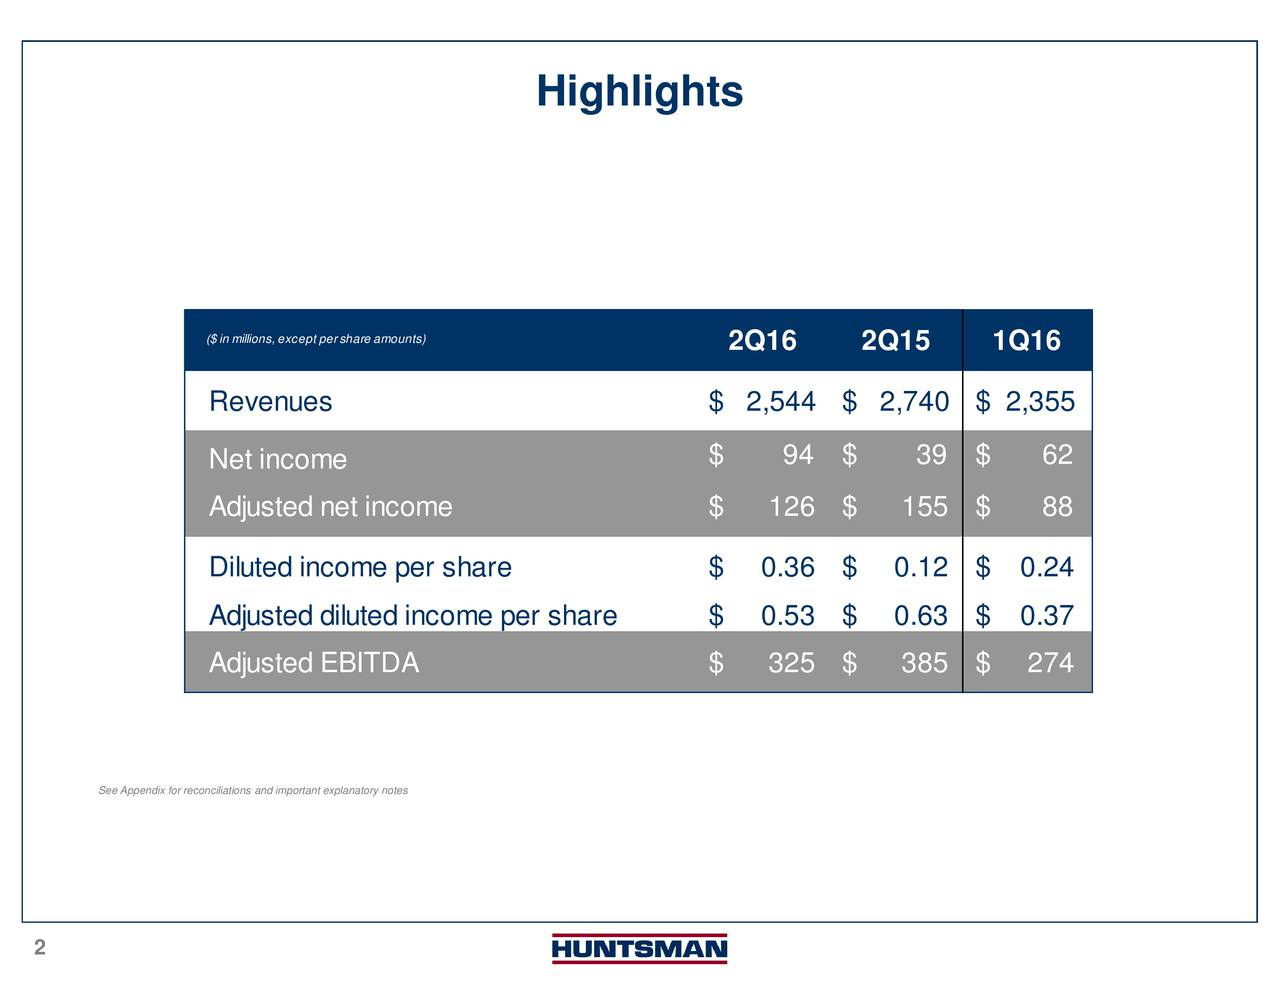 0.24 0.63 $ 0.37 2Q16 2Q15 1Q16 $ 94 $ 39 $ 62 Highlights anatory notes ($ in millions, except pershare amounts)ome per share2 See Appendix for reconciliations and important expl 2